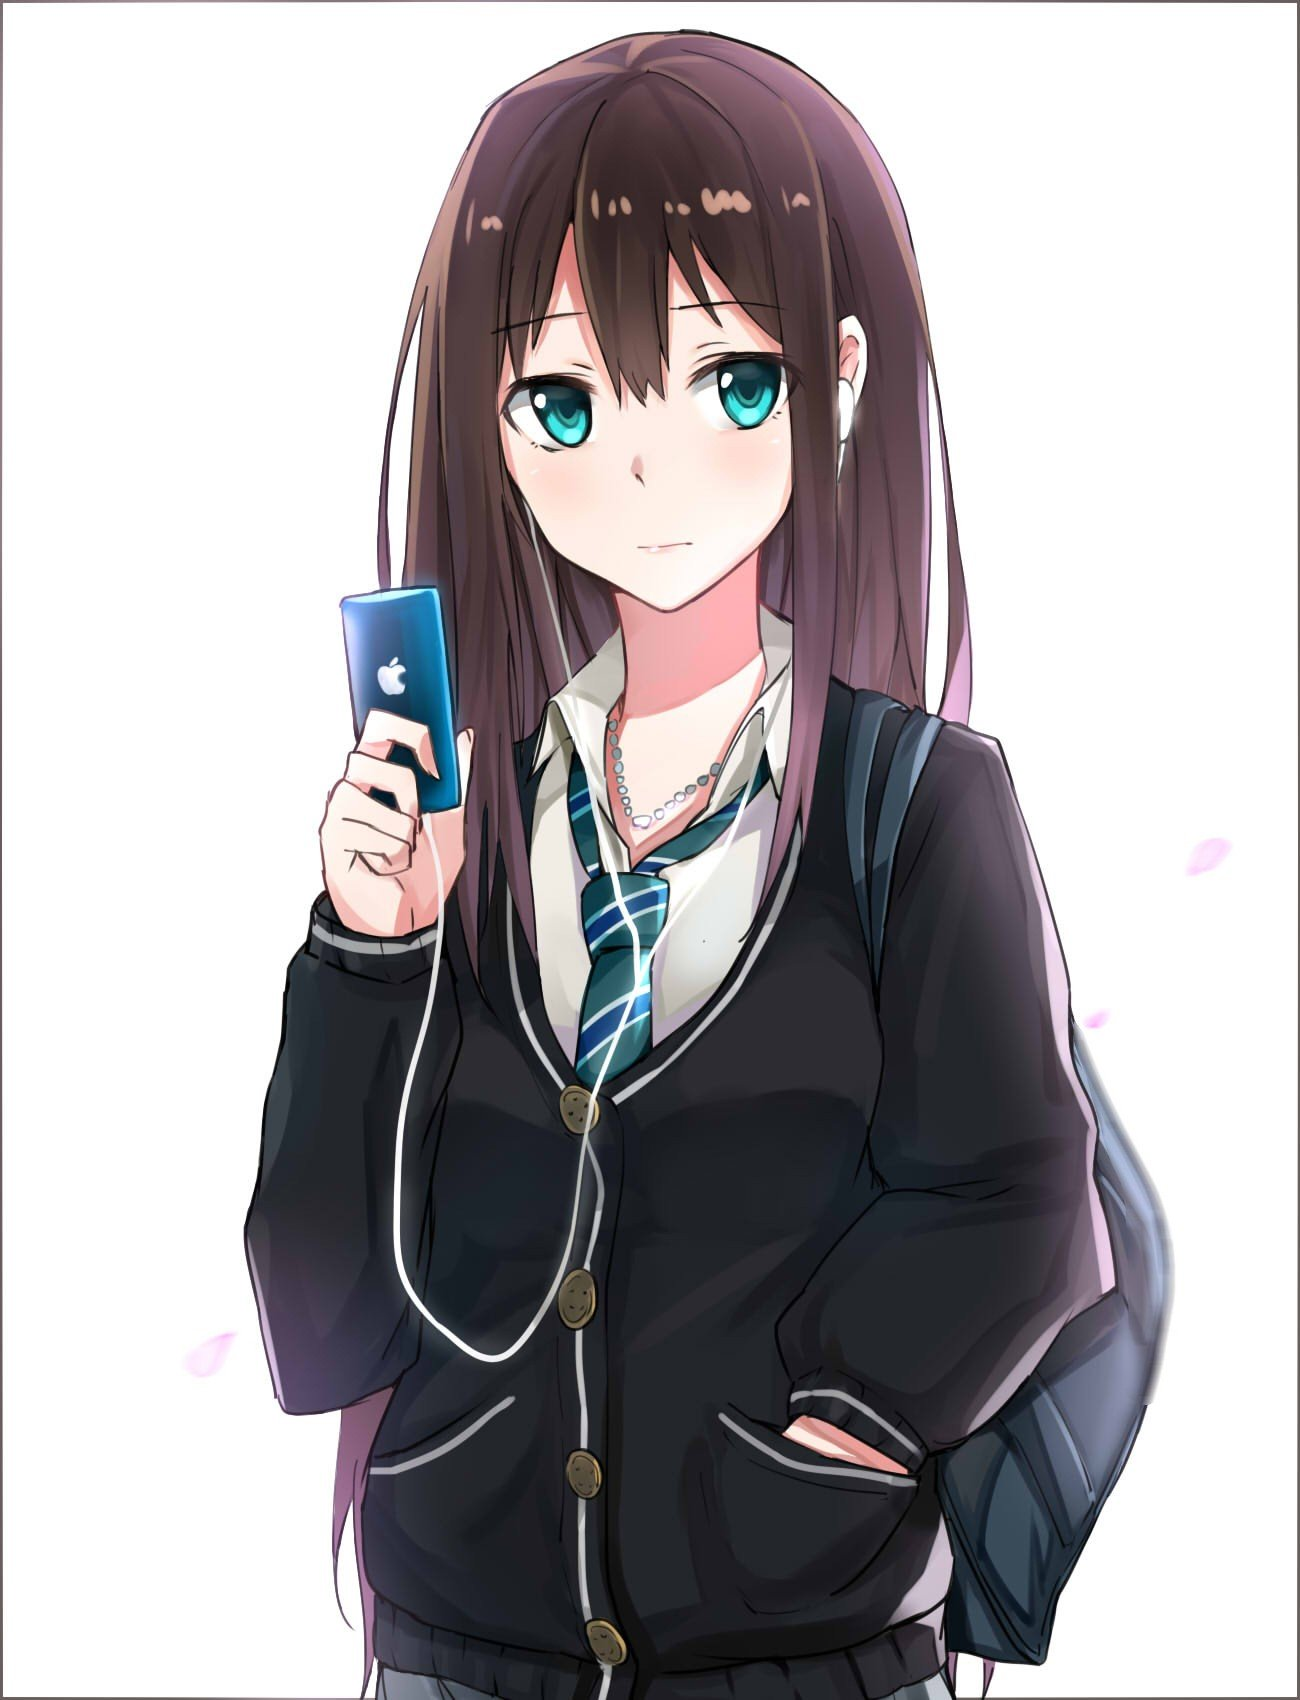 Long Hair Brunette Anime Anime Girls The Idolm Ster Cinderella Girls The Idolm Ster Shibuya Rin Sweater Aqua Eyes Smartphone Headphones Hd Wallpapers Desktop And Mobile Images Photos